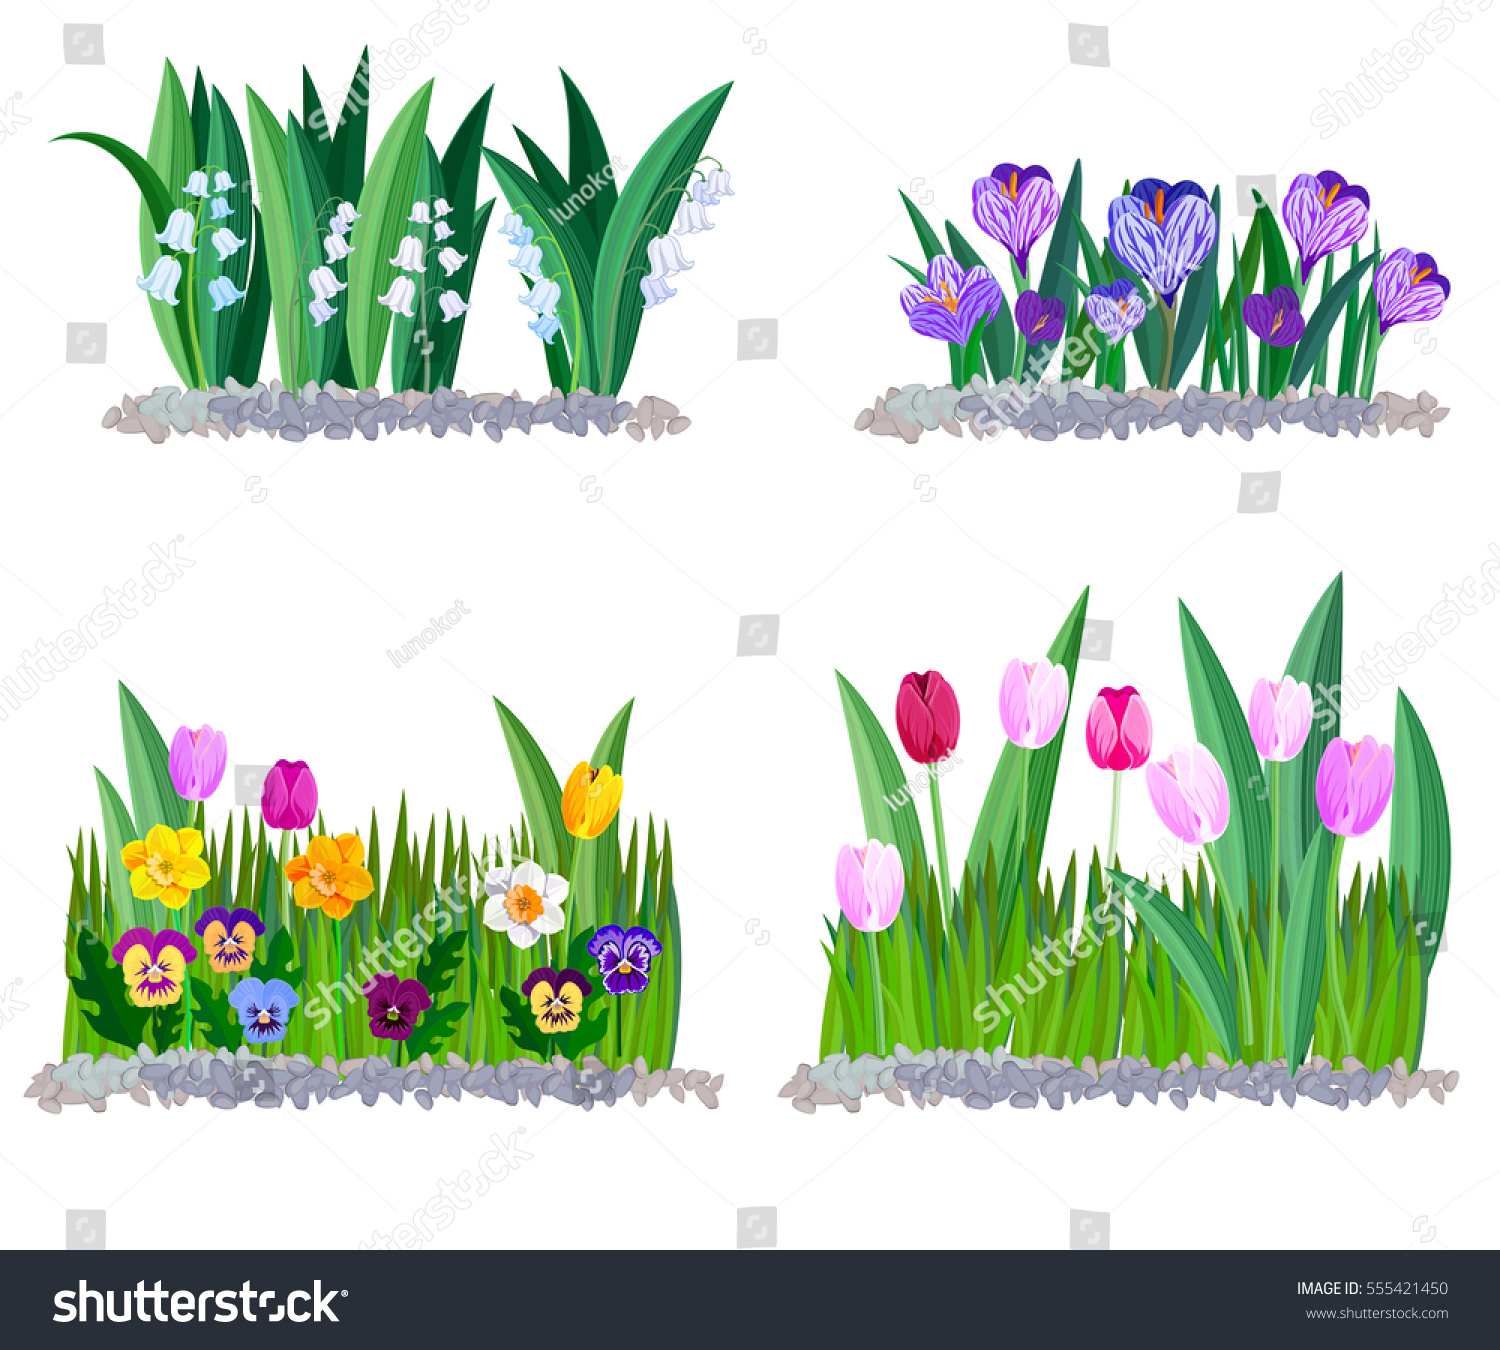 Spring Flowers Lily Valley Crocus Tulips Stock Vector Royalty Free